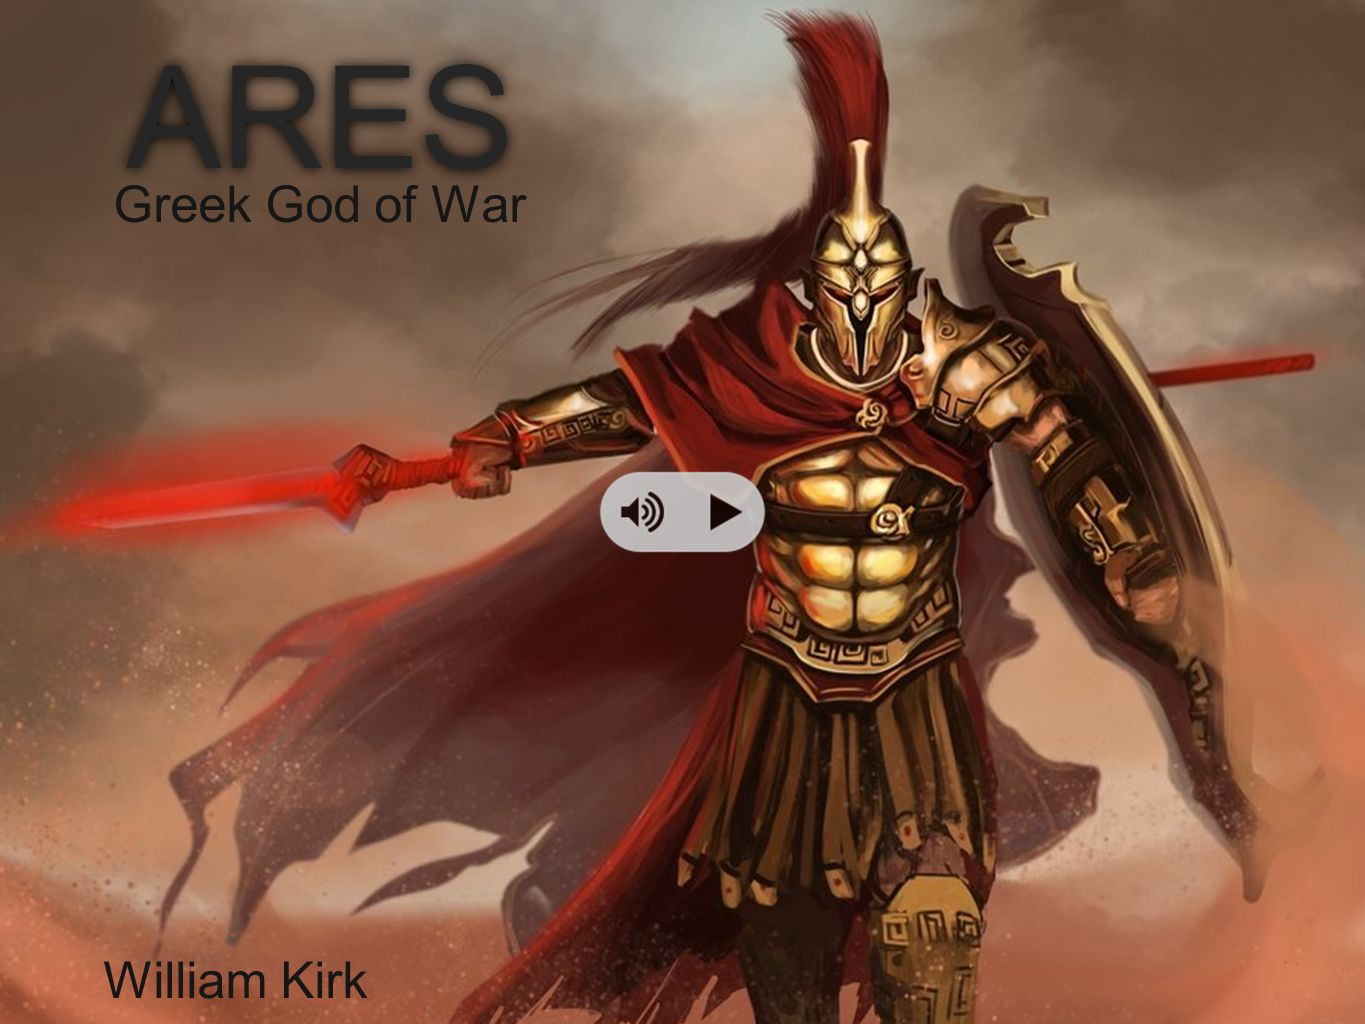 ARES Greek God of War William Kirk